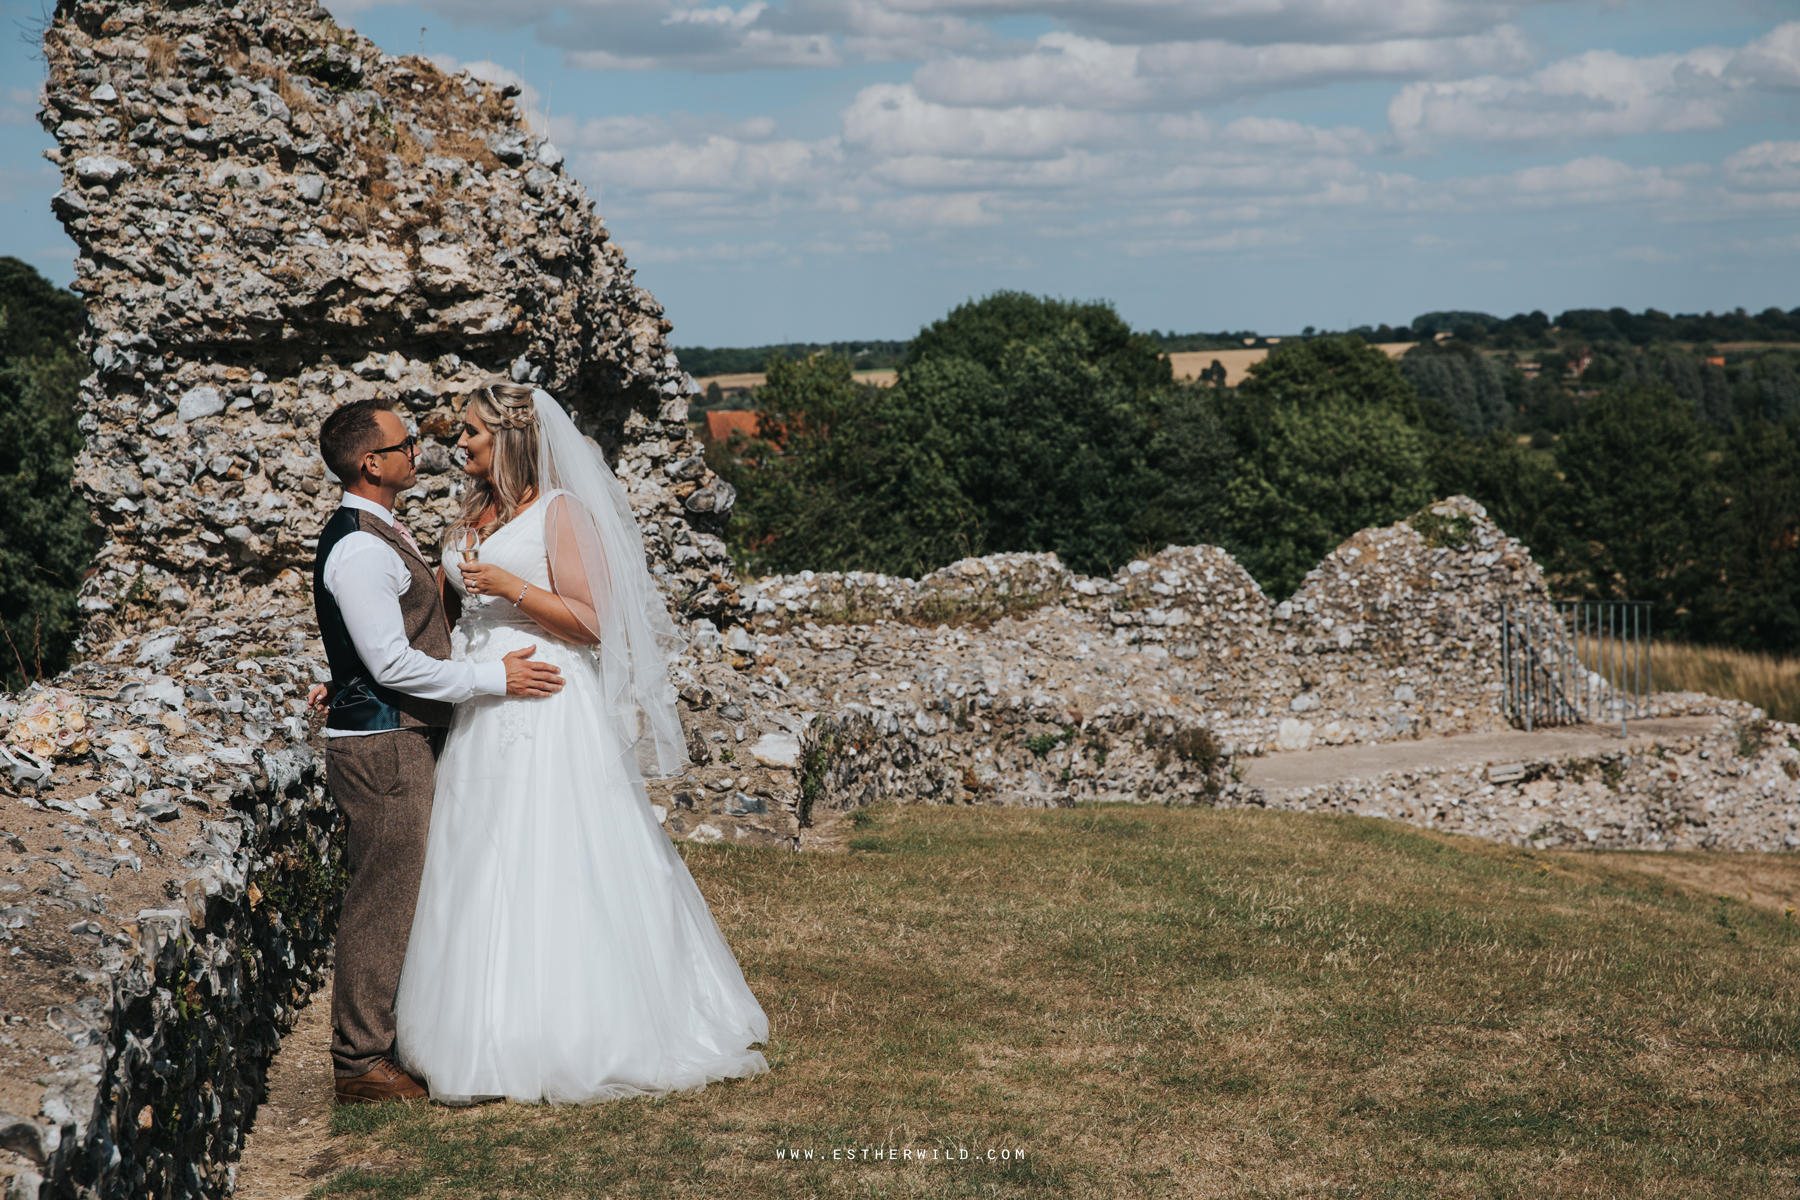 Swaffham_Wedding_Castle_Acre_Norfolk_Esther_Wild_Photographer_Wedding_Photography_3R8A1403.jpg